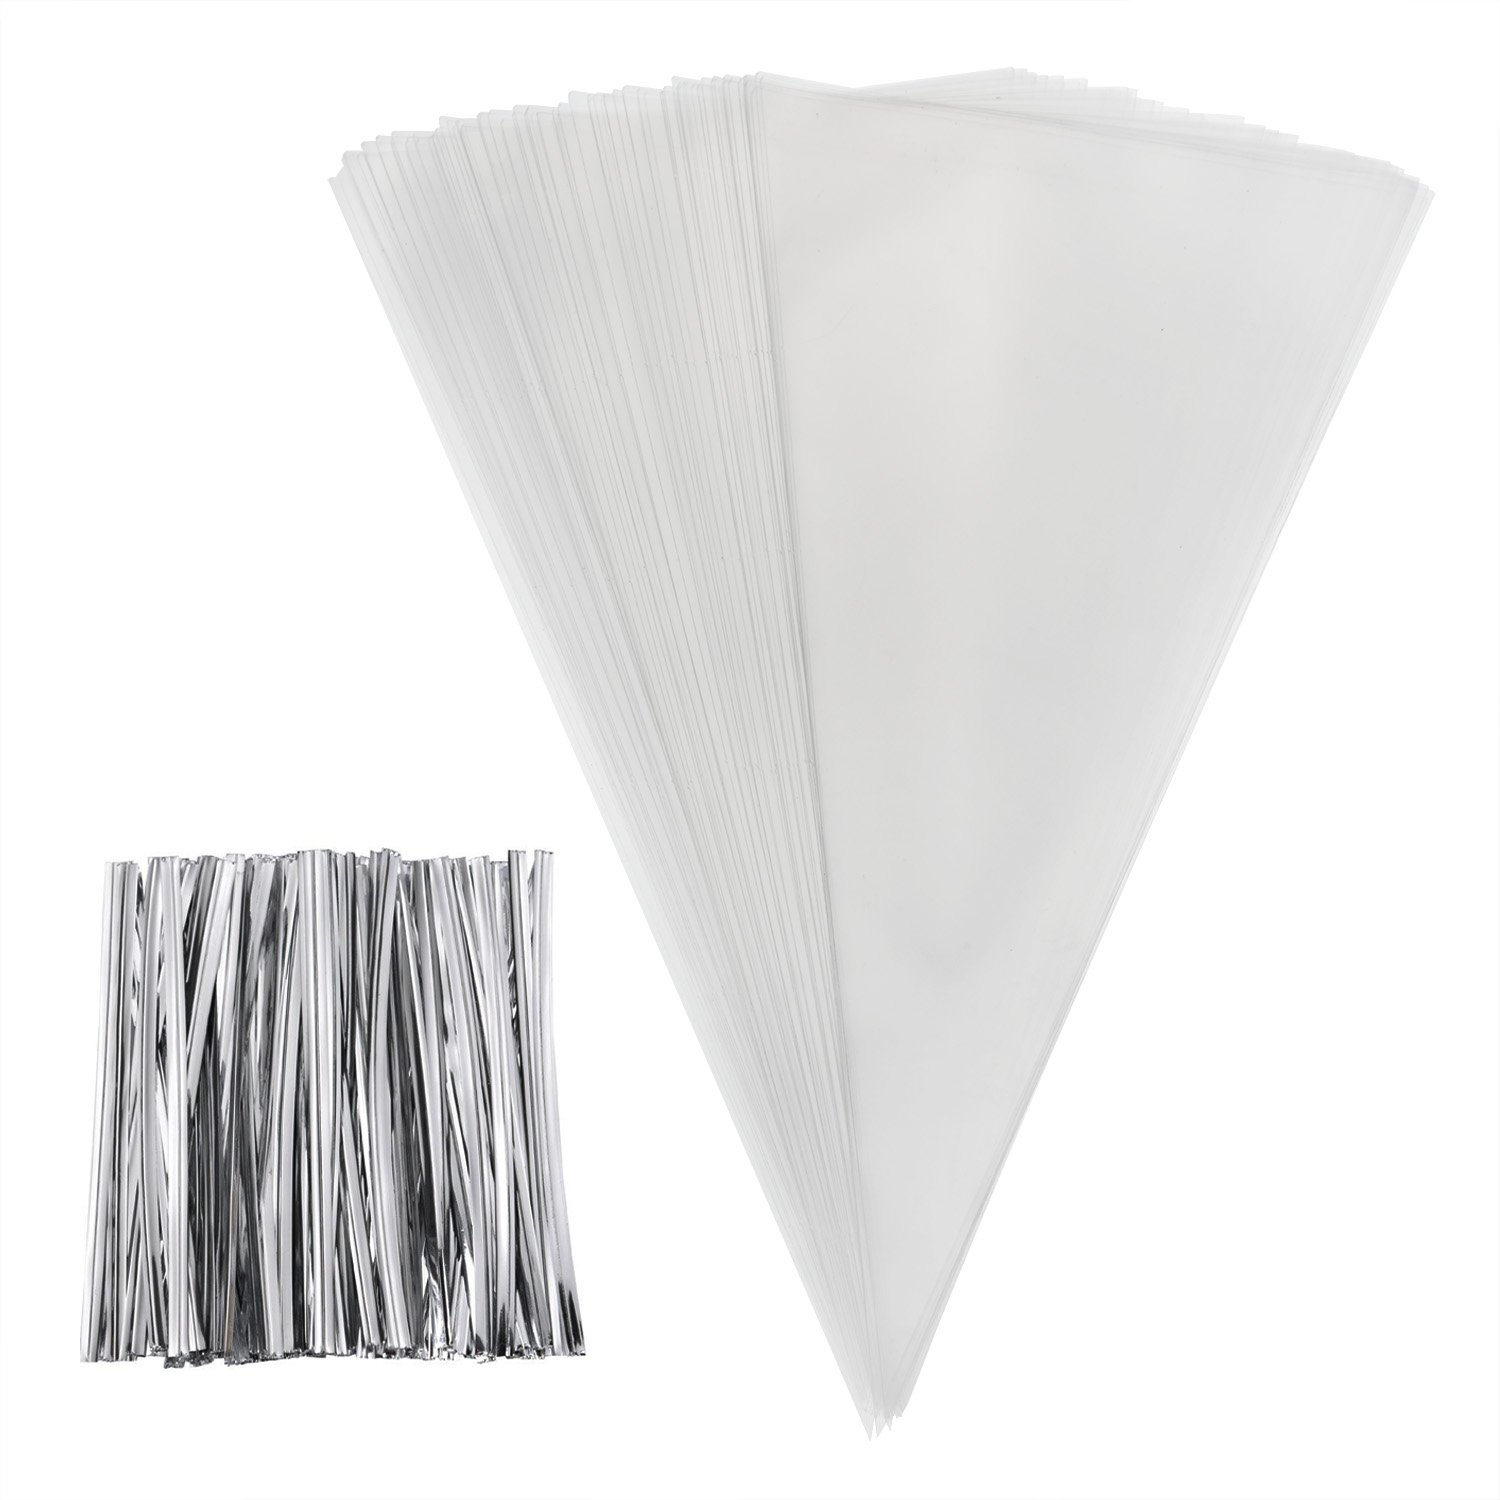 Outus 100 Pieces Large Size Clear Cone Bags Cello Bags Treat Bags and 100 Pieces Silver Twist Ties for Crafts and Sweets